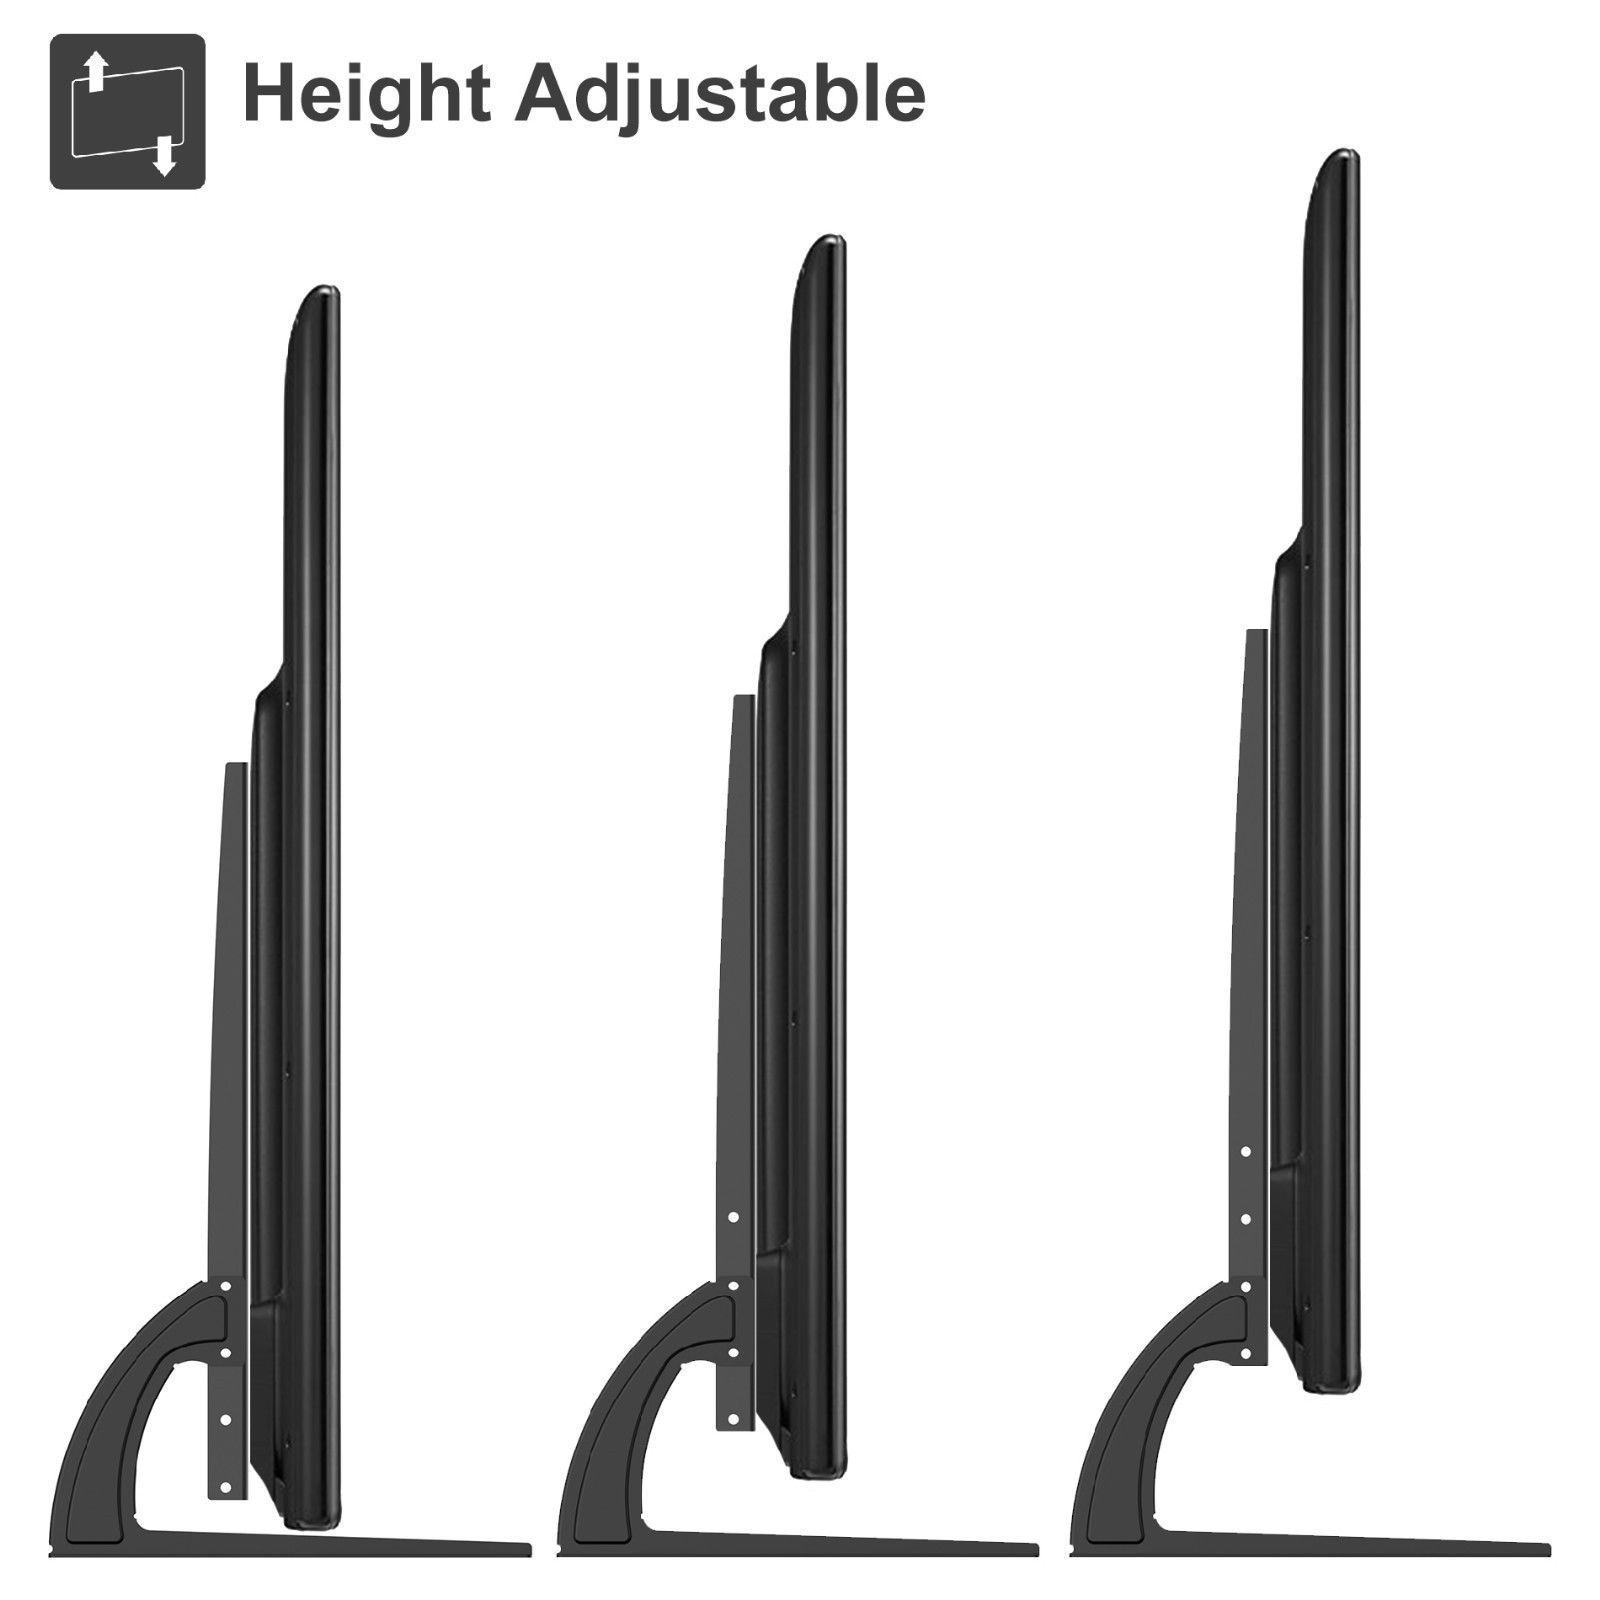 Universal Table Top TV Stand Legs for Vizio E55-C1 Height Adjustable